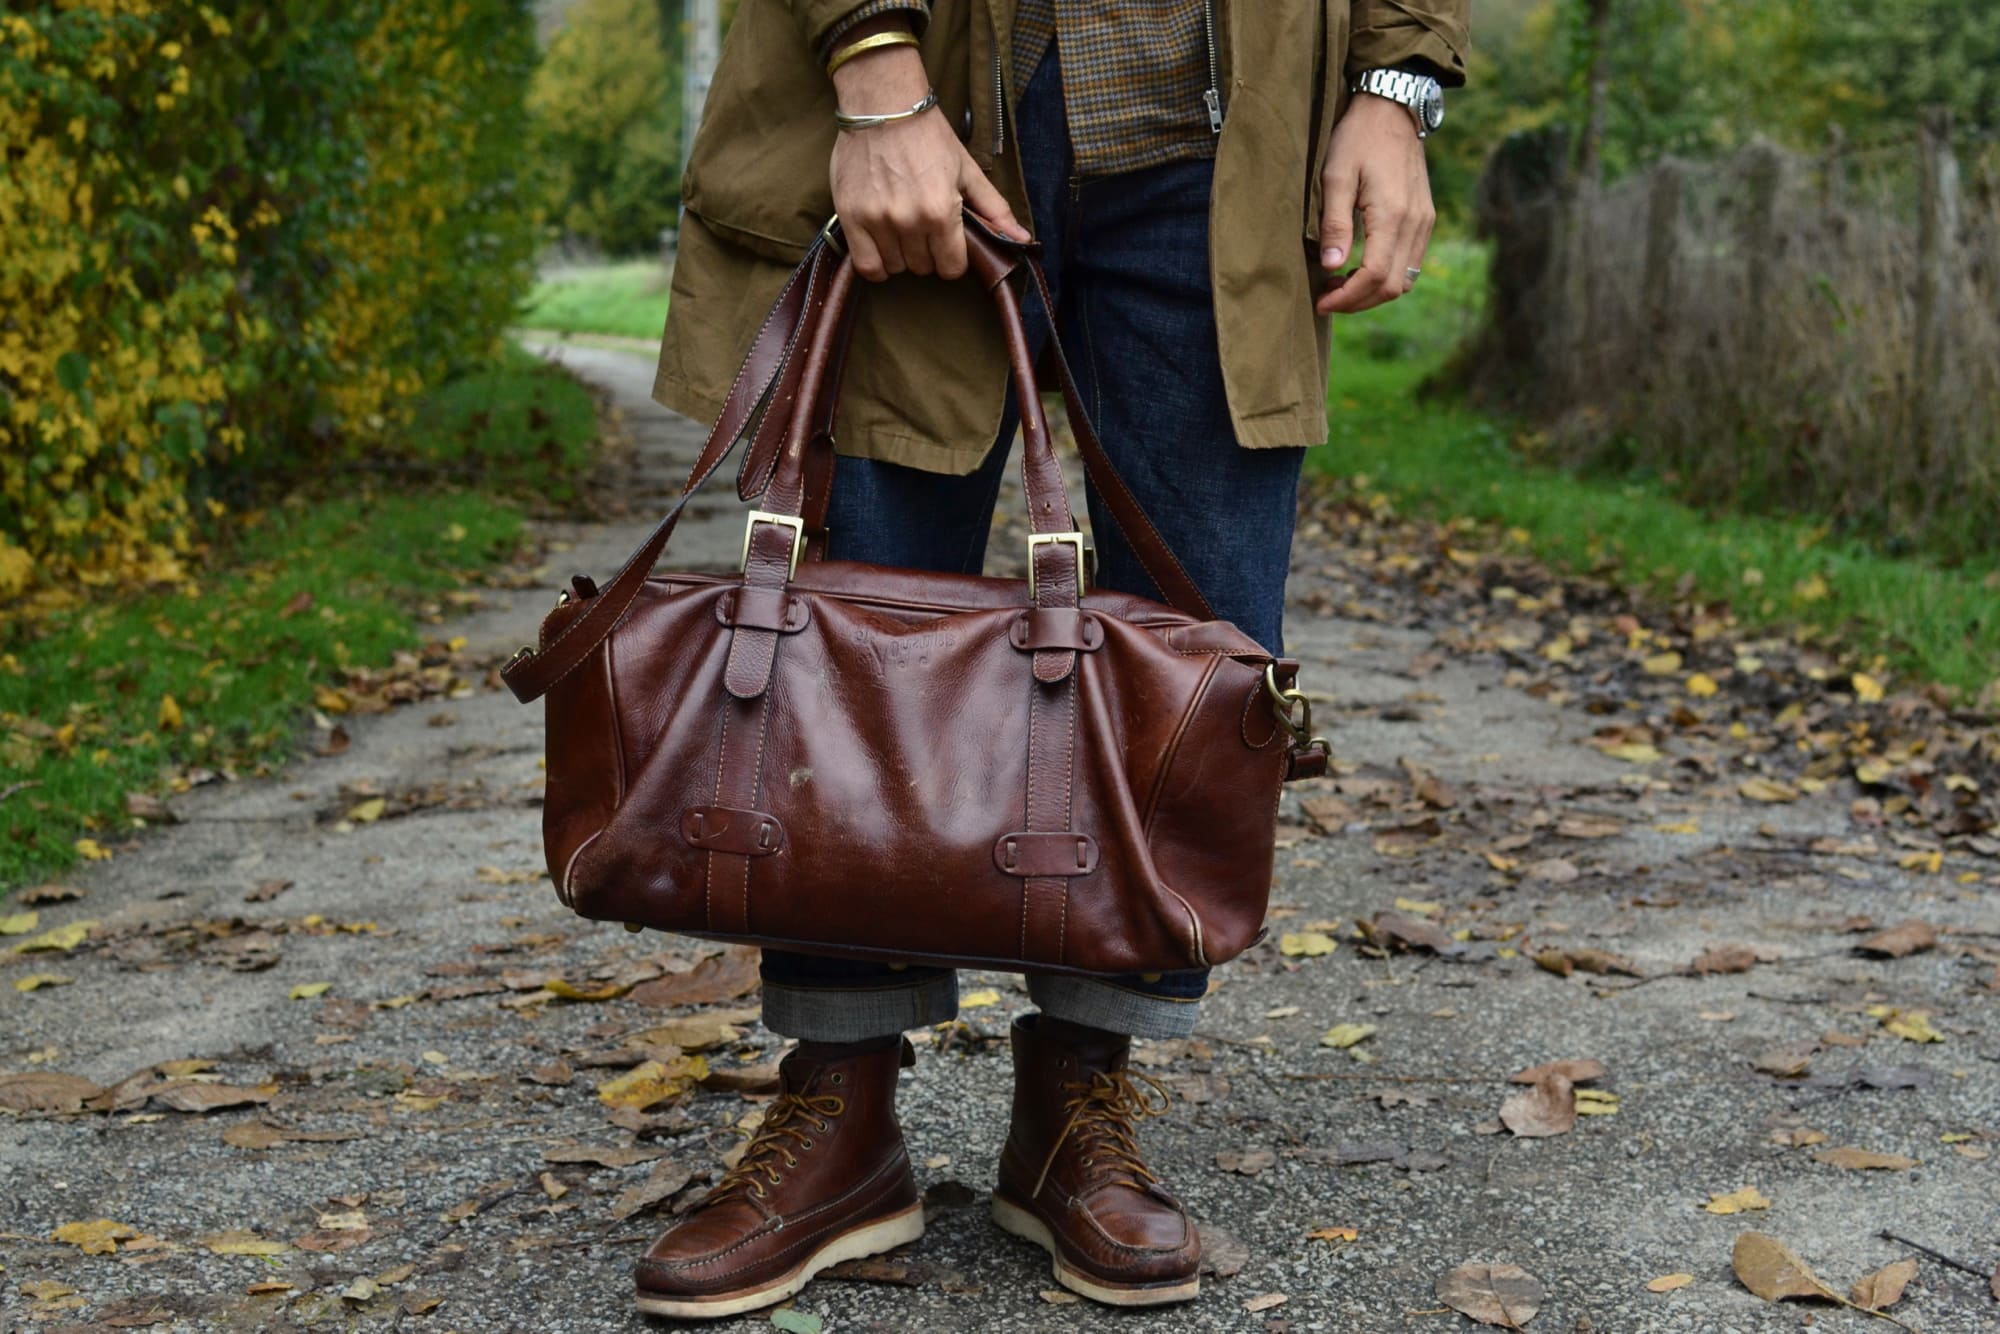 Sac de voyage 48h weekend weekender en cuir italien made in taly leather Frères de Voyagesheritage bag